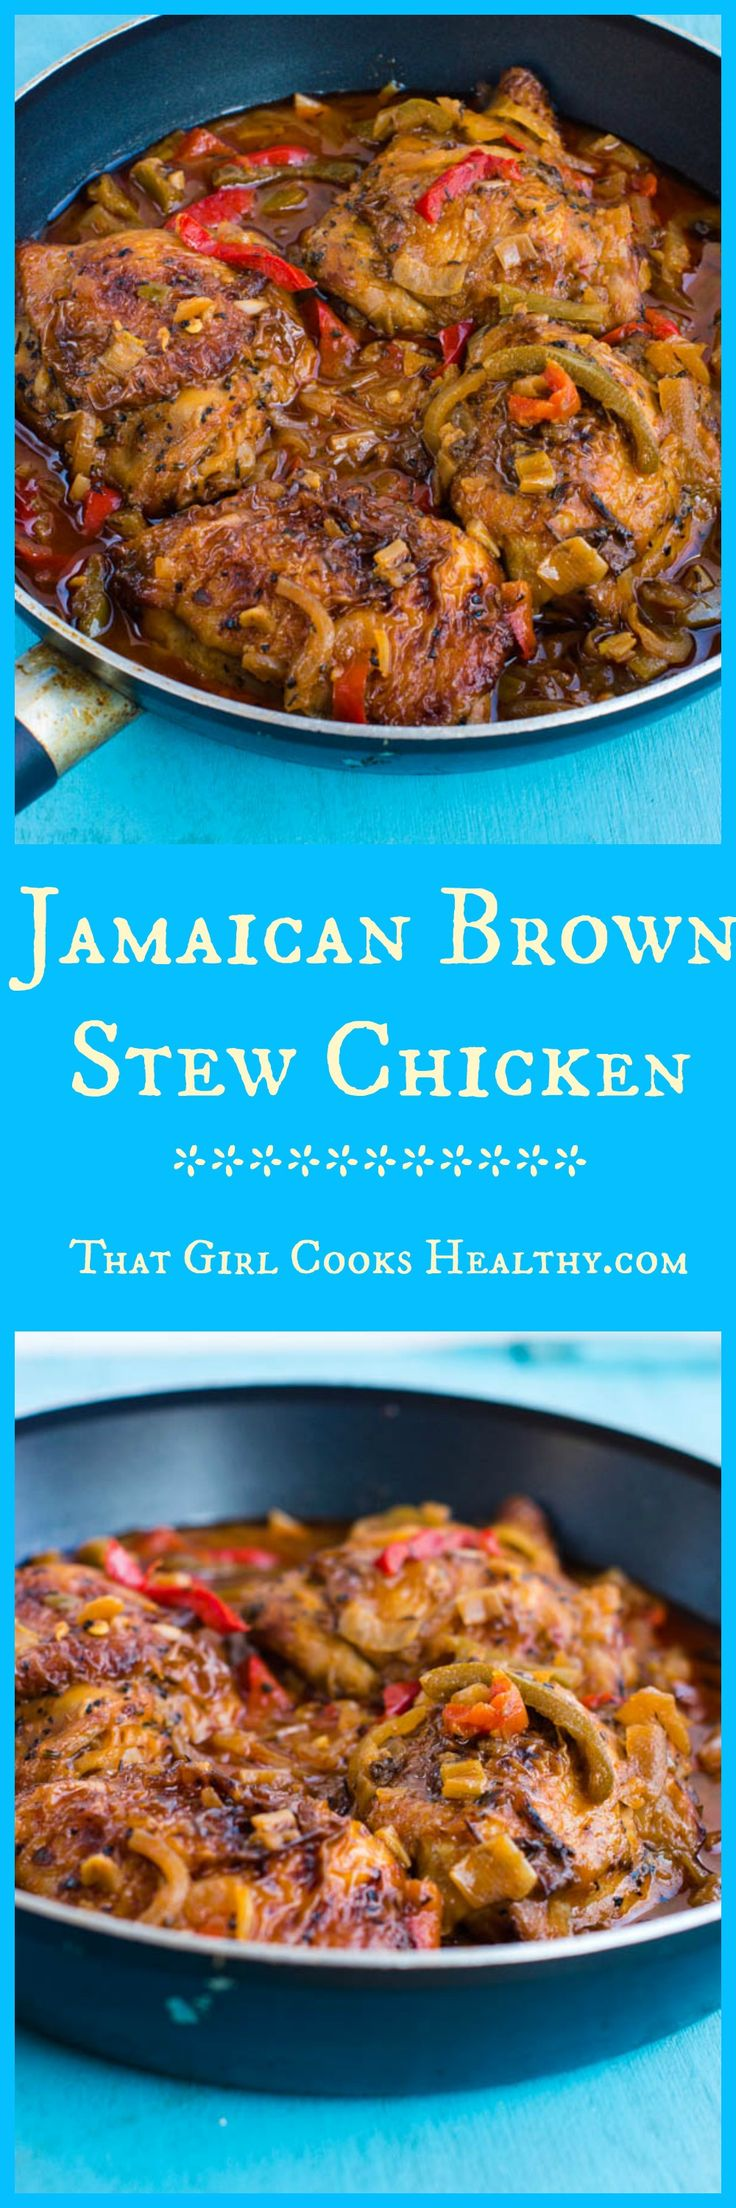 Jamaican brown stew chicken - paleo and gluten free Come and see our new website at bakedcomfortfood.com!